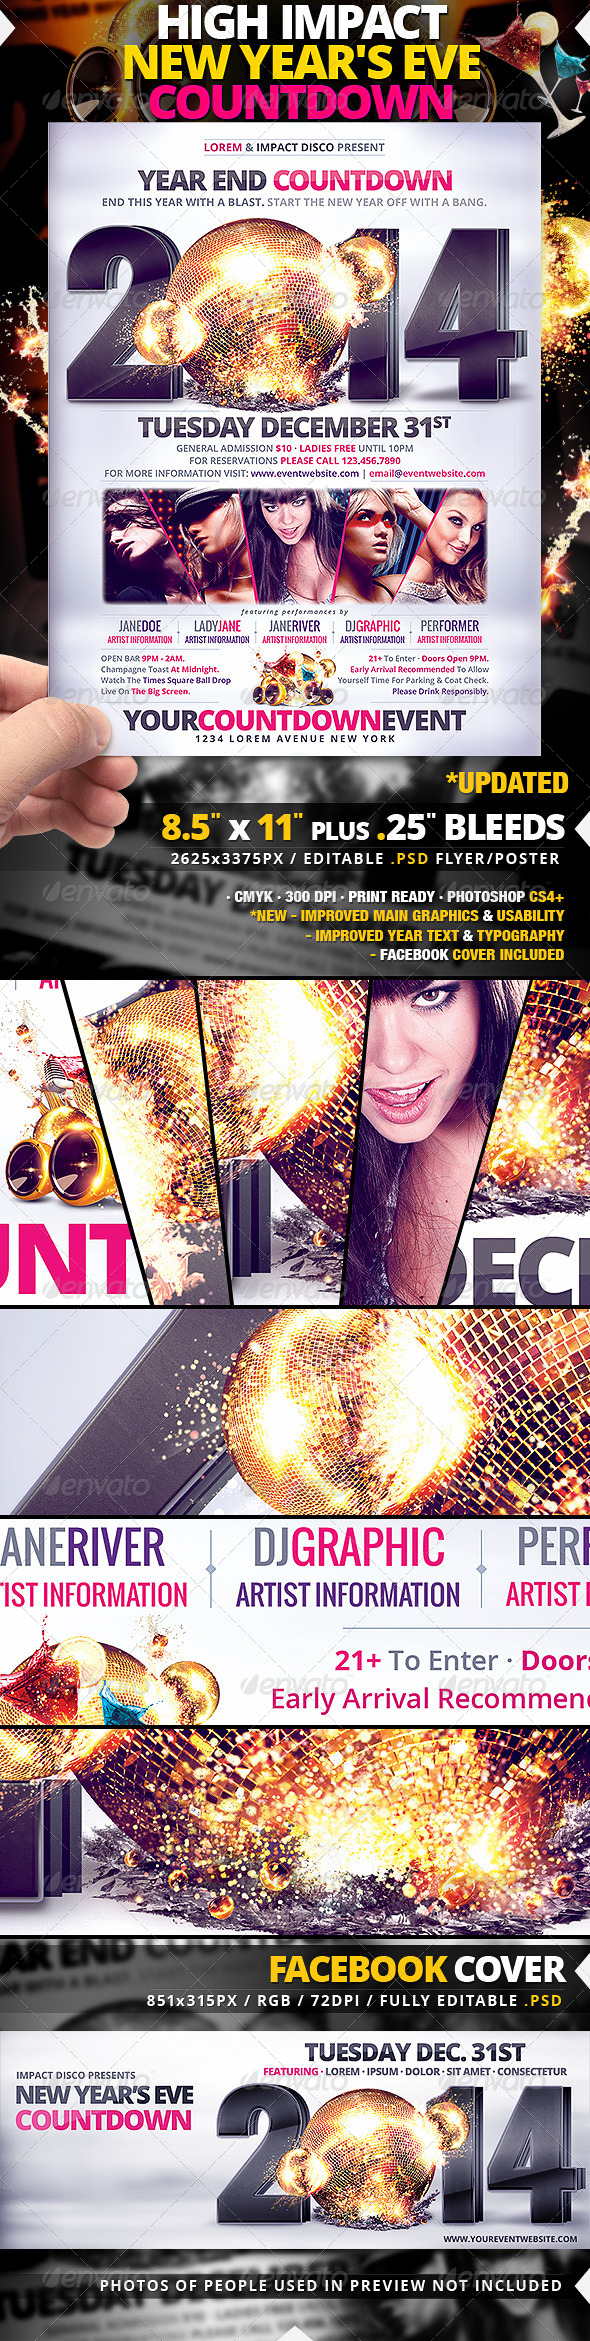 High Impact New Year's Eve Countdown Flyer/Poster - Clubs & Parties Events